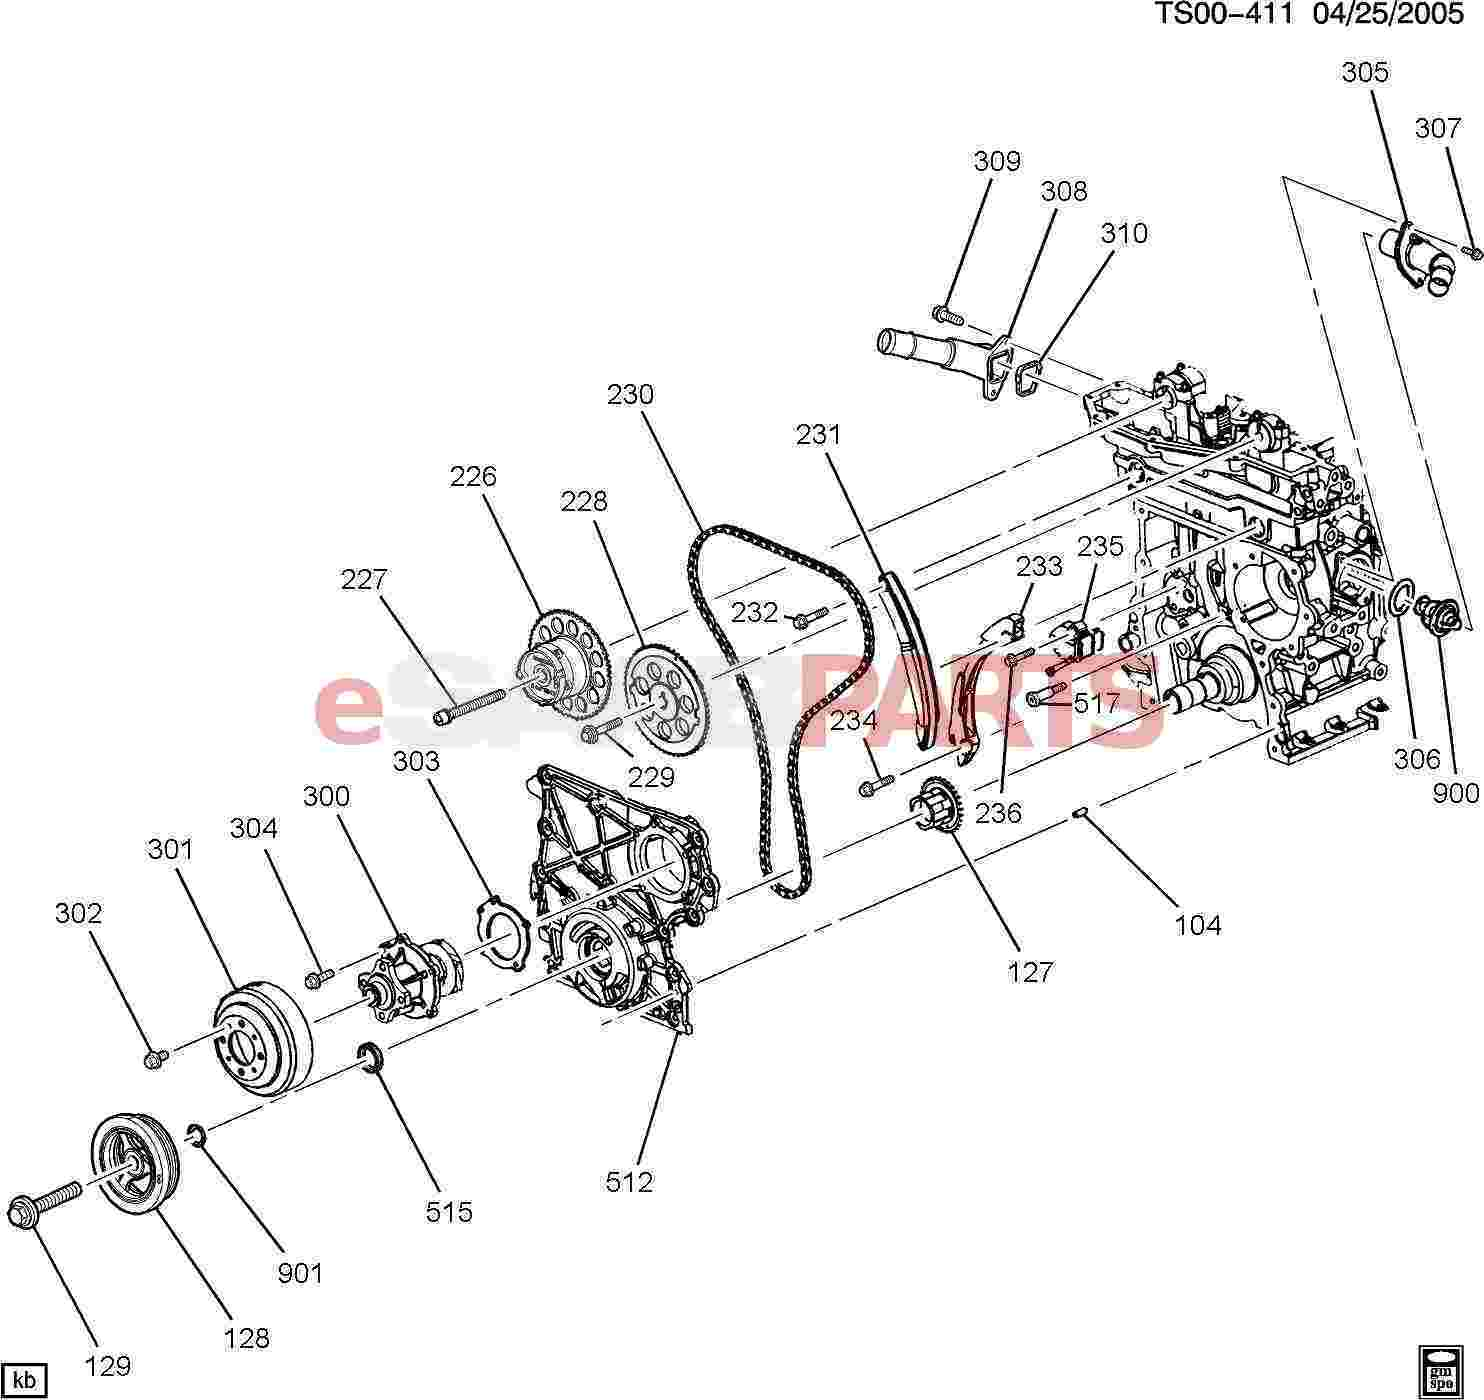 12561155 Saab Seal Engine Cool Therm Hsg Genuine Parts From 3 1 L Diagram Image 306